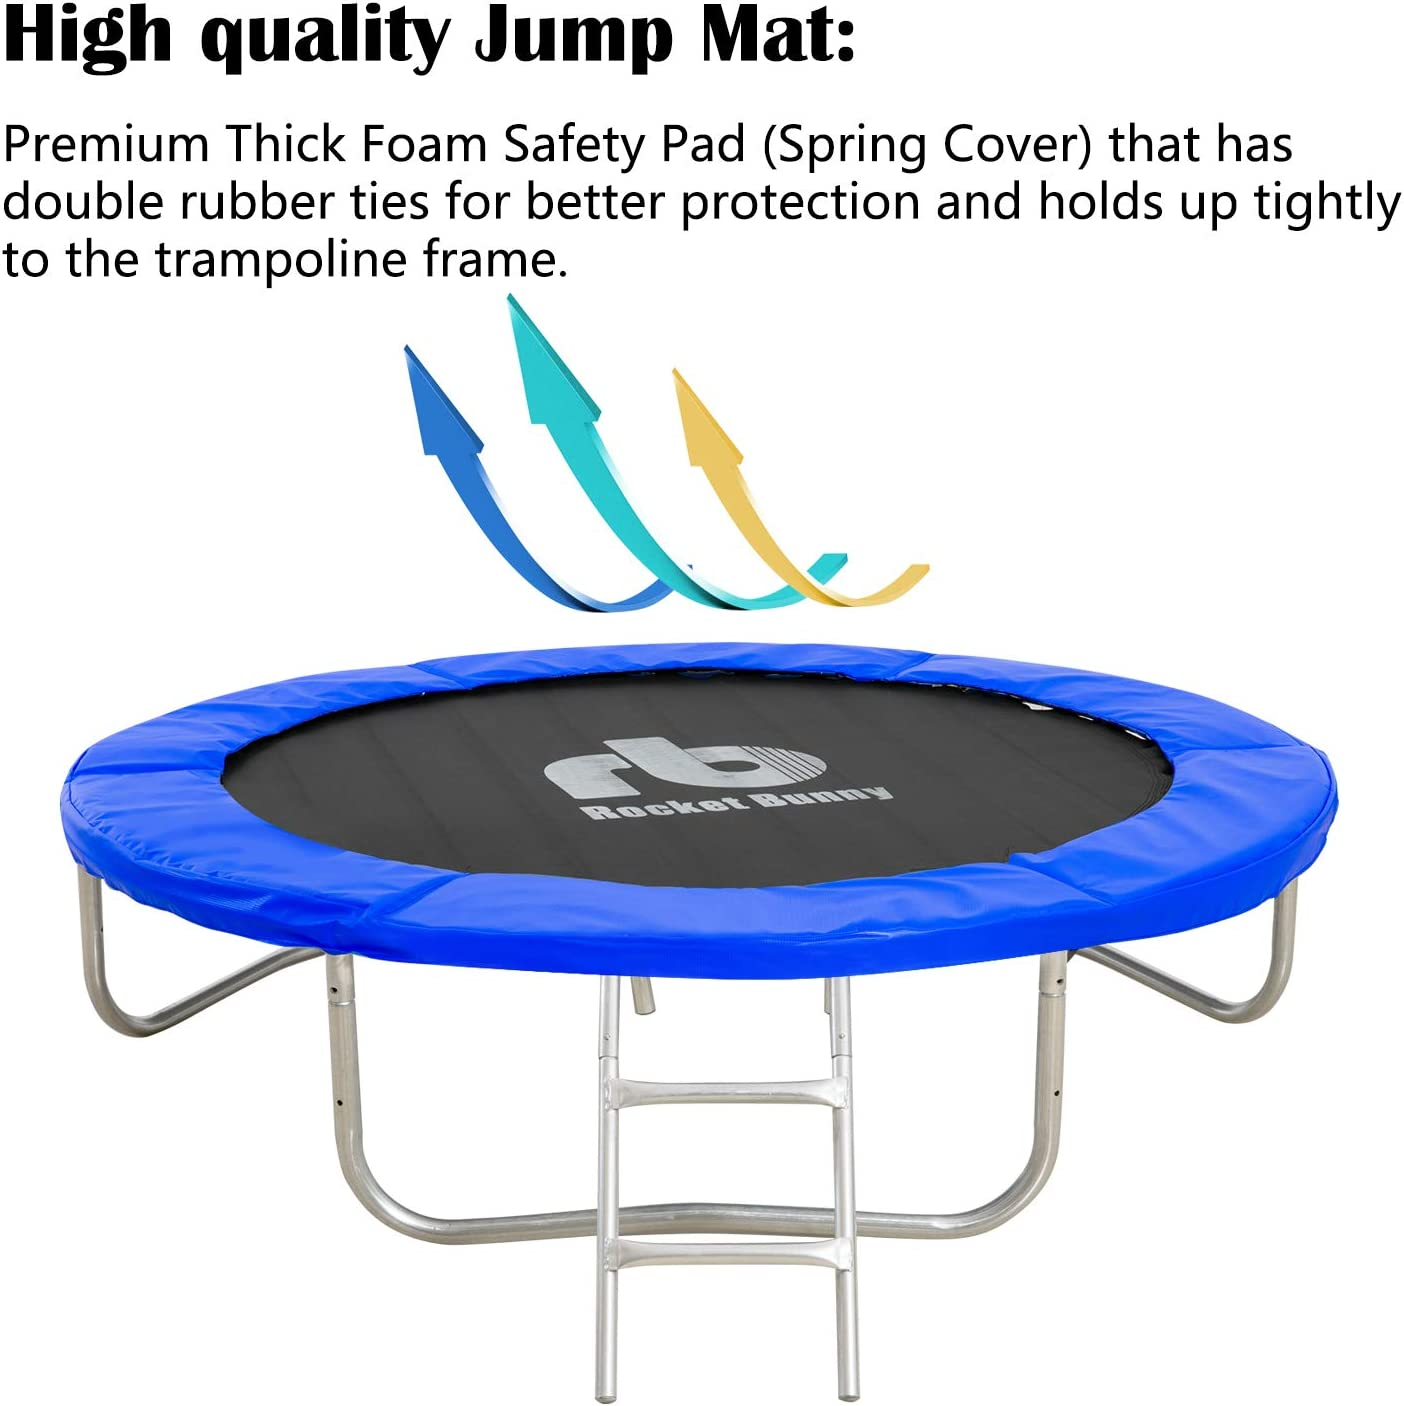 SEAPHY Rocket Bunny Trampoline with Safety Enclosure Netting and Ladder Jumping Mat 8ft